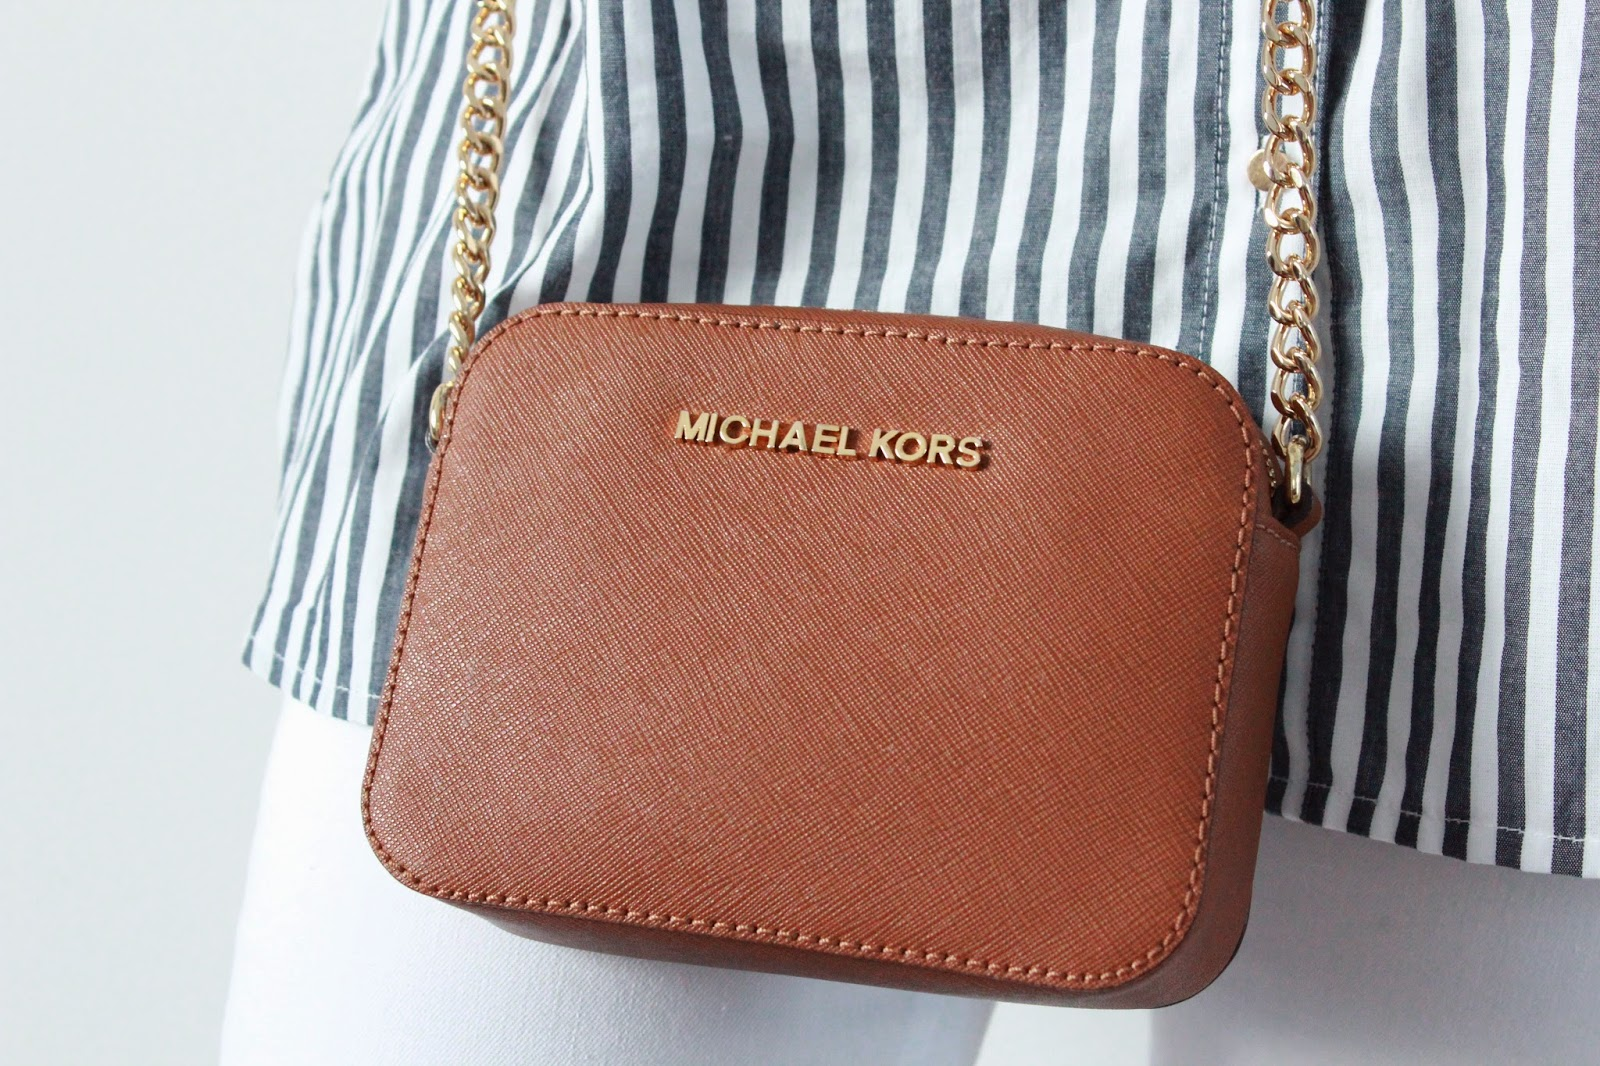 6f9f2ca8d31d Bags of Style  Michael Kors Mini Cross Body Bag